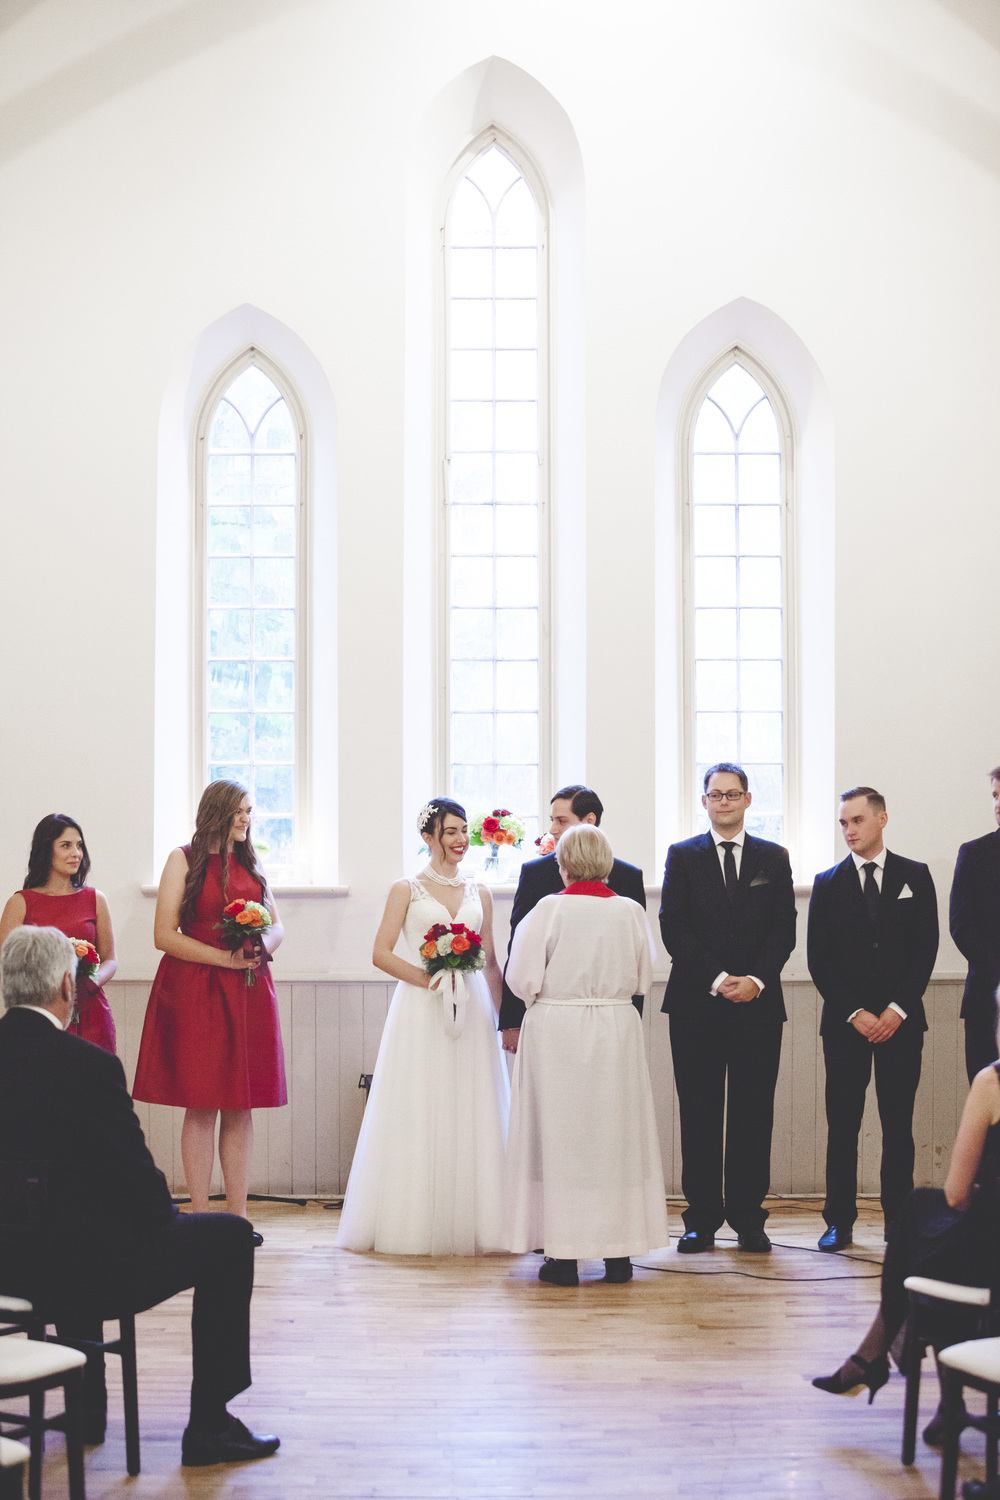 Wedding ceremony inside Enoch Turner Schoolhouse in Toronto